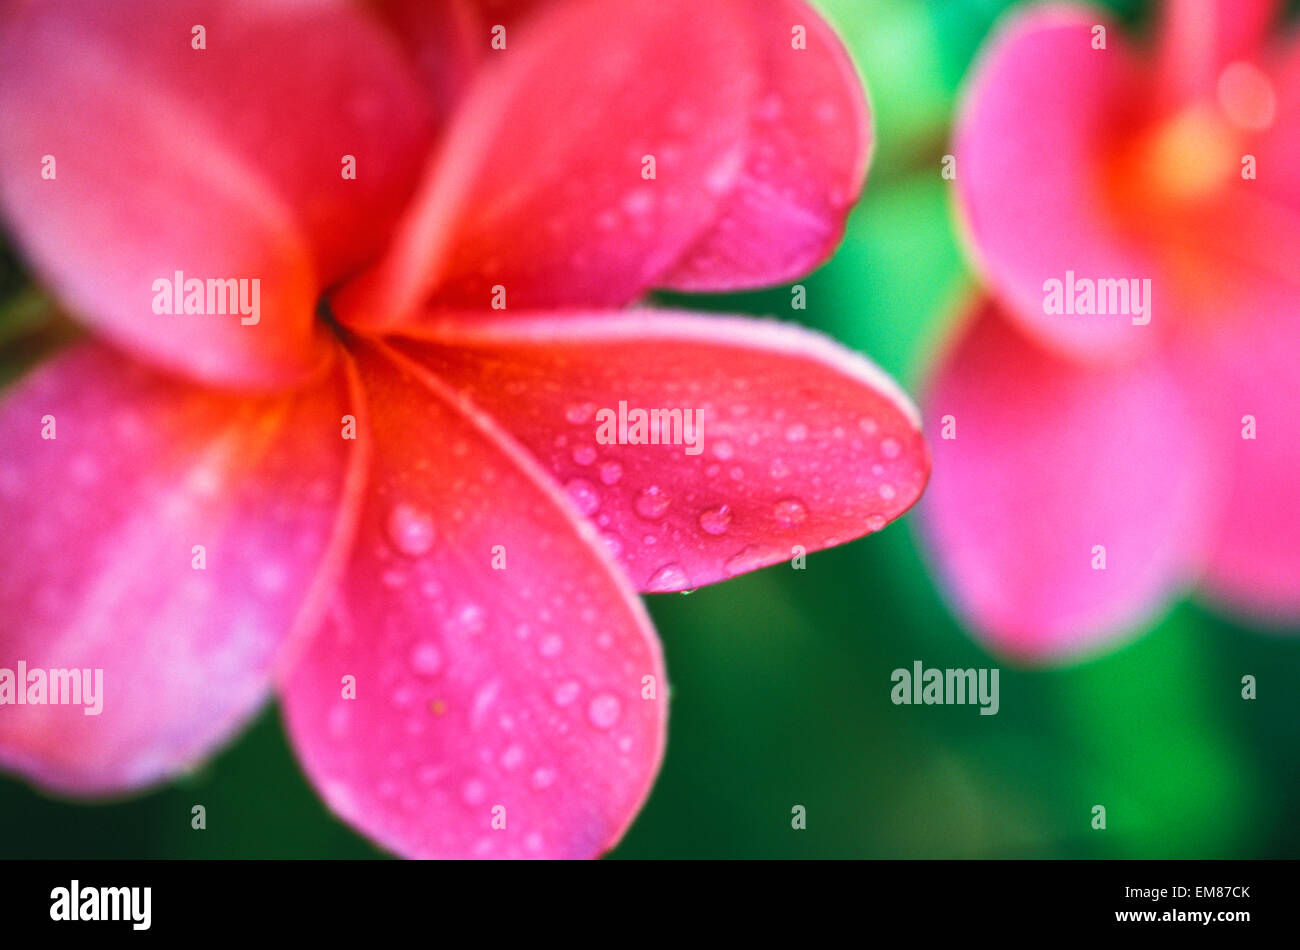 Hawaii maui close up pink plumeria flowers aka frangipani on hawaii maui close up pink plumeria flowers aka frangipani on plant outdoor water droplets wet blurry background dhlflorist Gallery